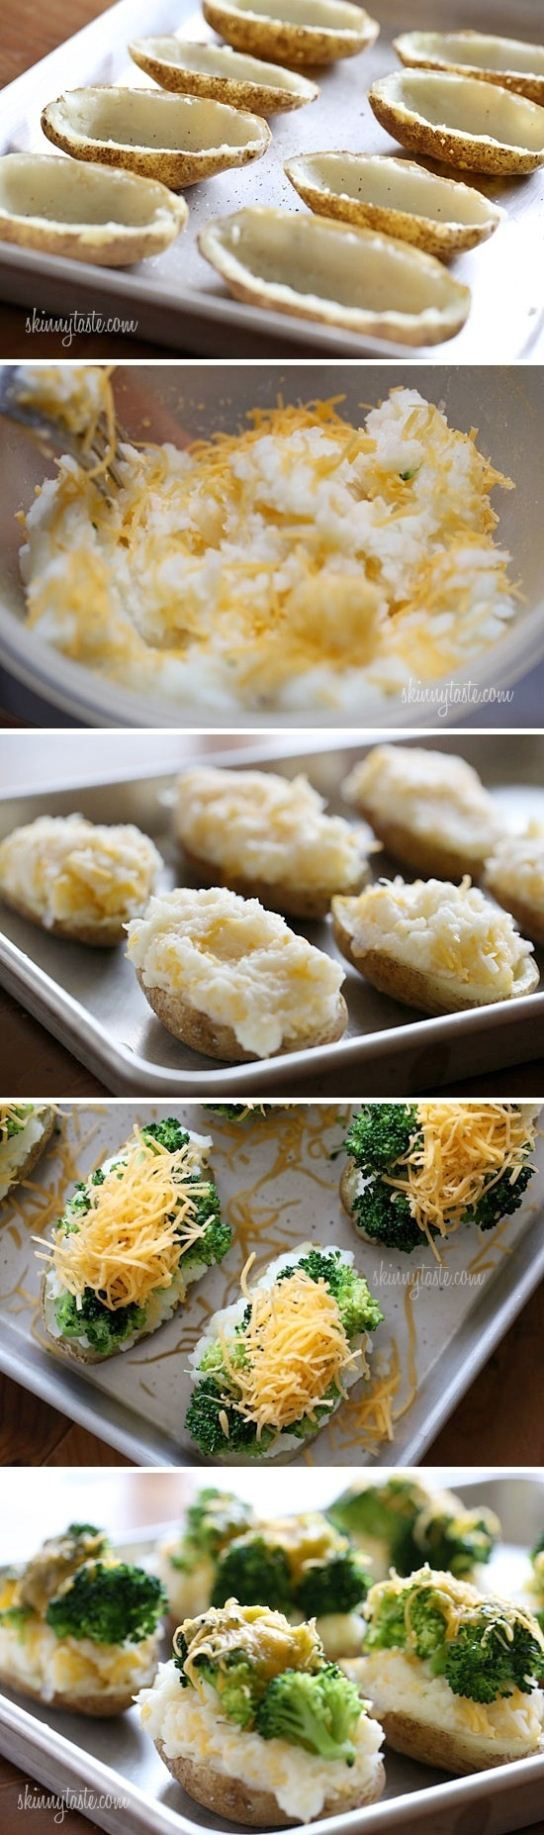 St. Patrick's Day-food ideas-Cheese and broccoli stuffed potatoes. You could make this healthier if you didn't put extra potatoes back in it just use the outside with the broccoli and low fat cheese